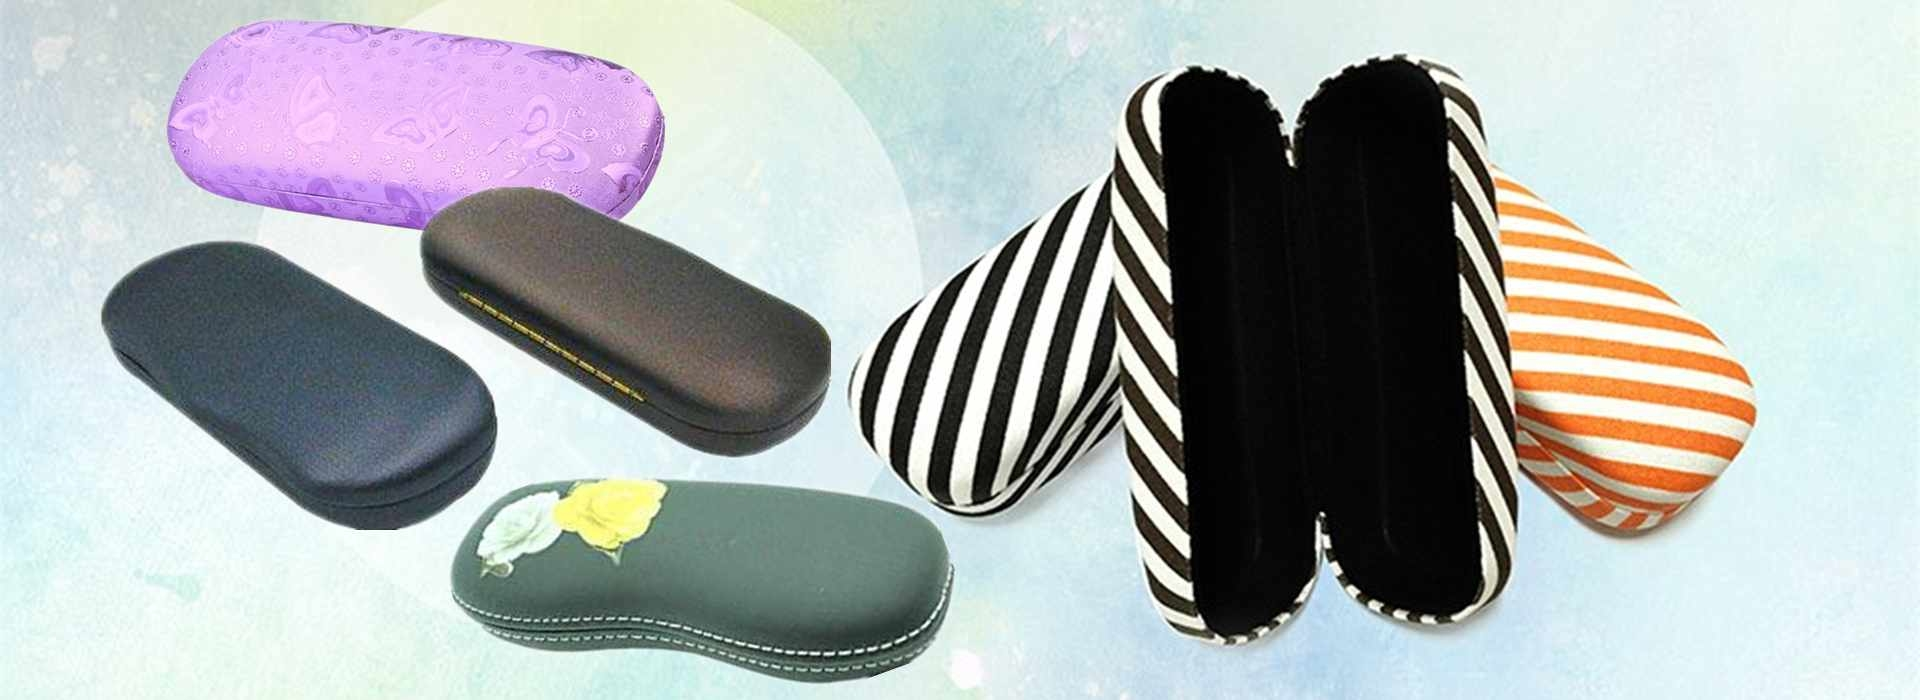 Wholesale Eyeglass Cases,Sunglass Cases ,Glasses Cases ,Spectacle Cases